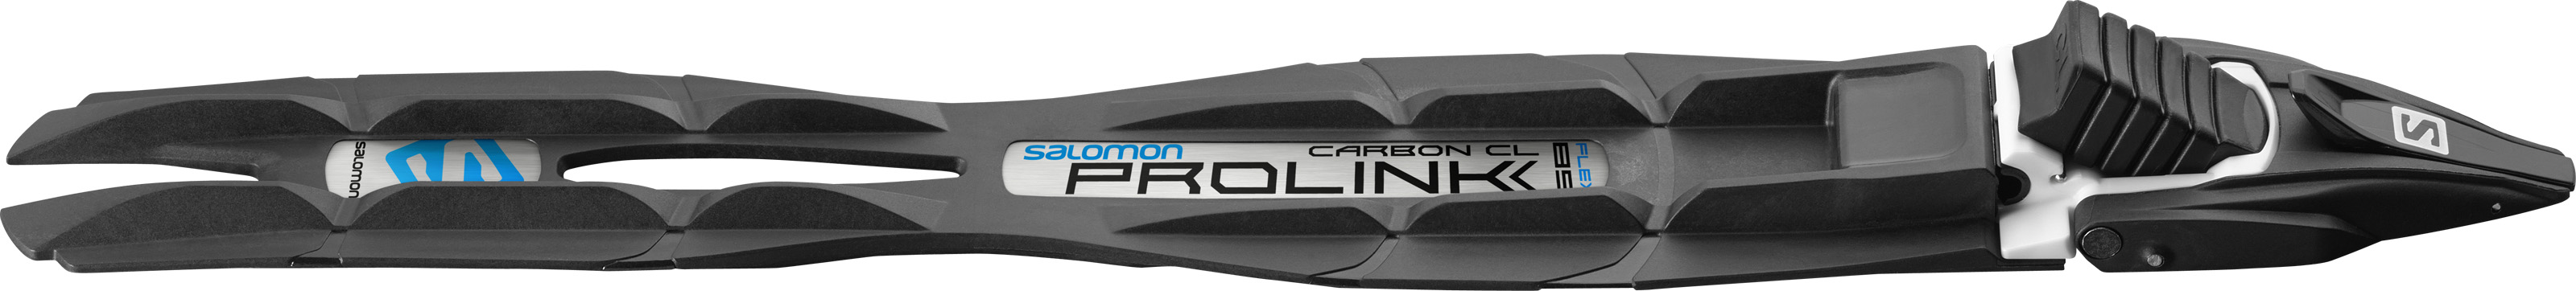 SALOMON PROLINK CARBON CL2 16/17